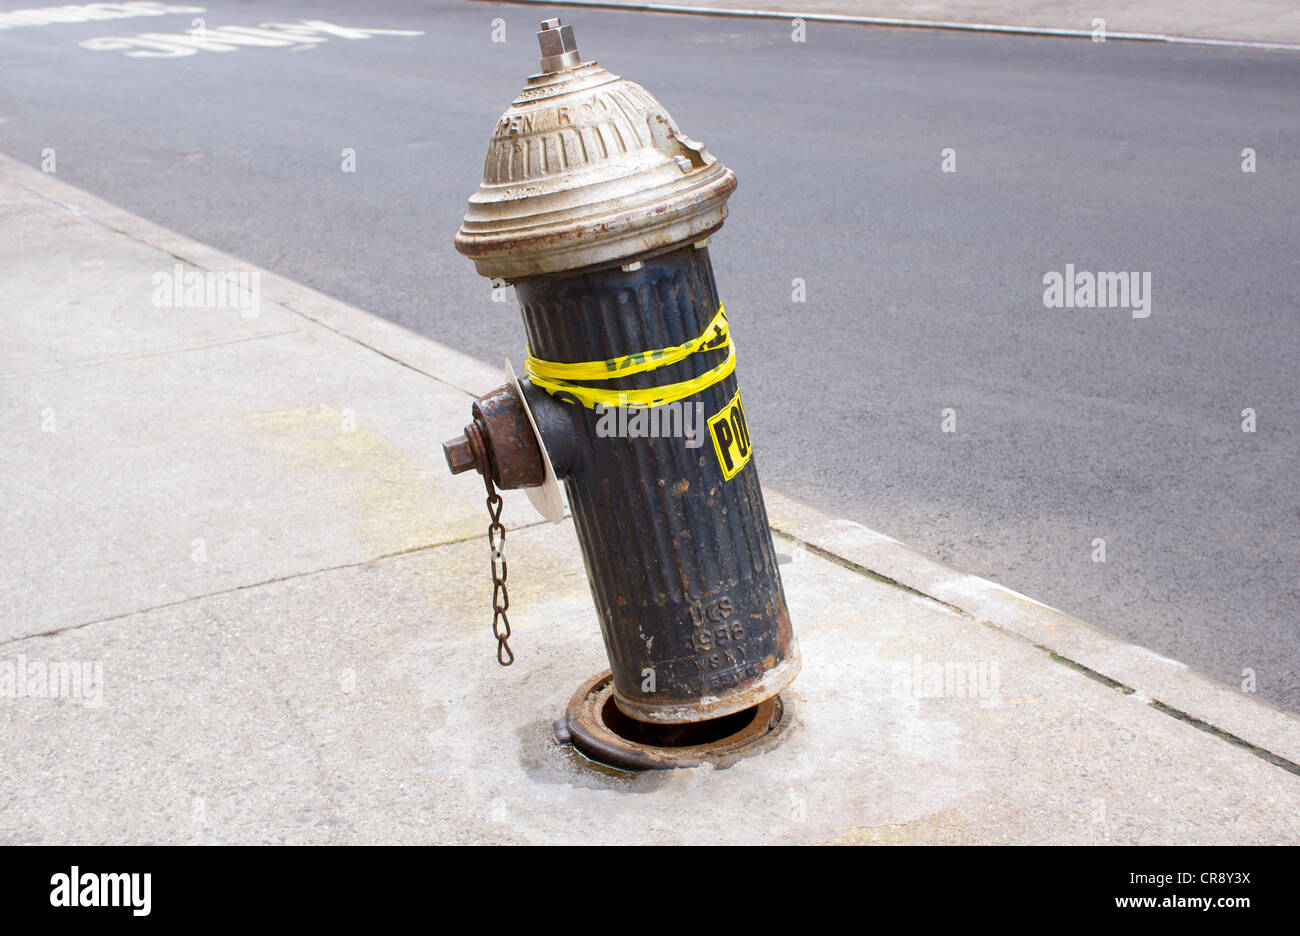 An old out of order broken fire hydrant  in New York City - Stock Image